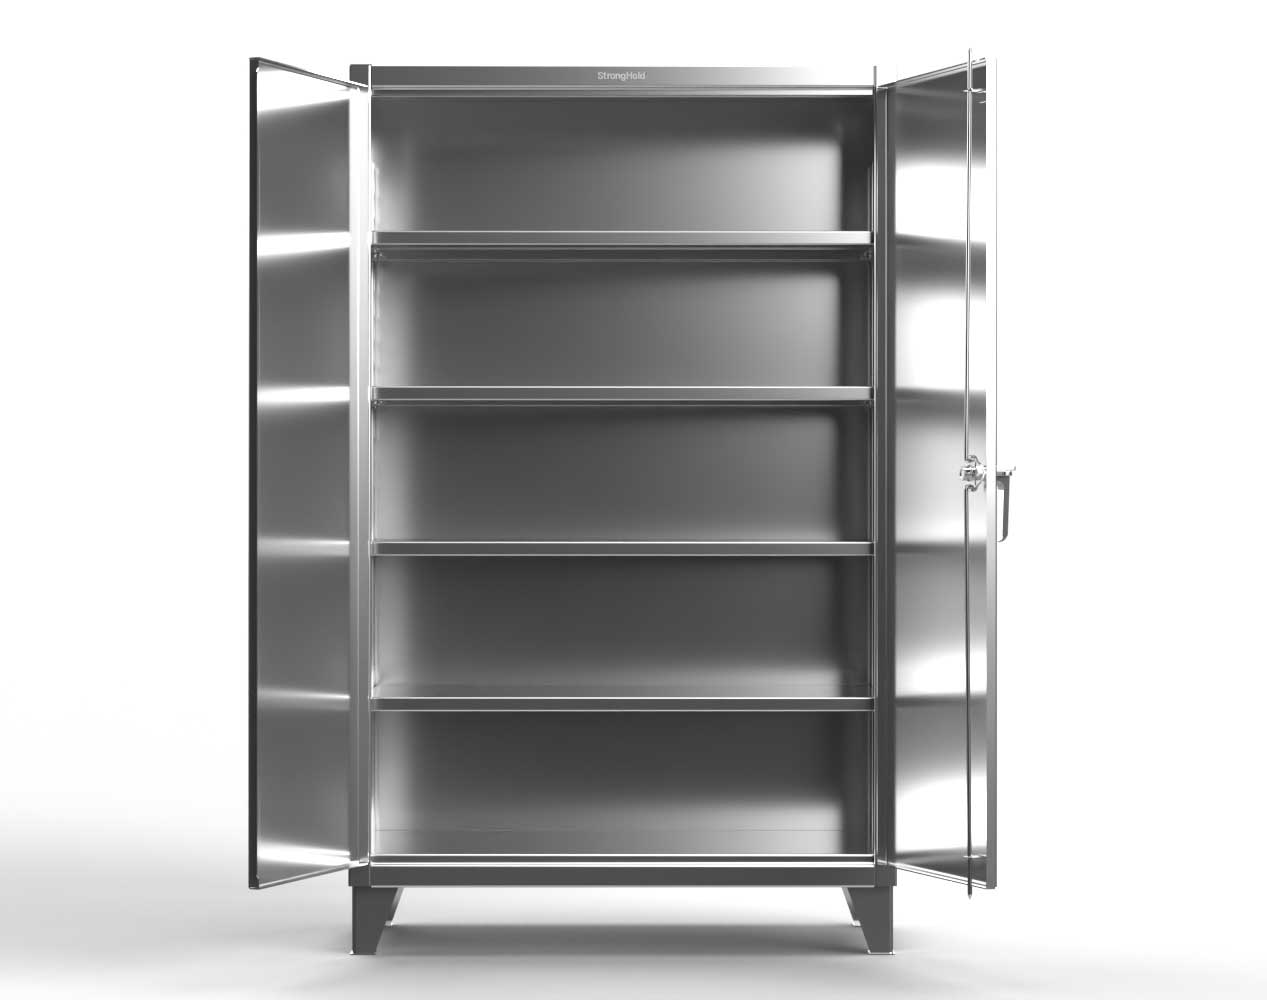 Extra Heavy Duty 12 GA Stainless Steel Cabinet with 4 Shelves – 48 In. W x 24 In. D x 78 In. H